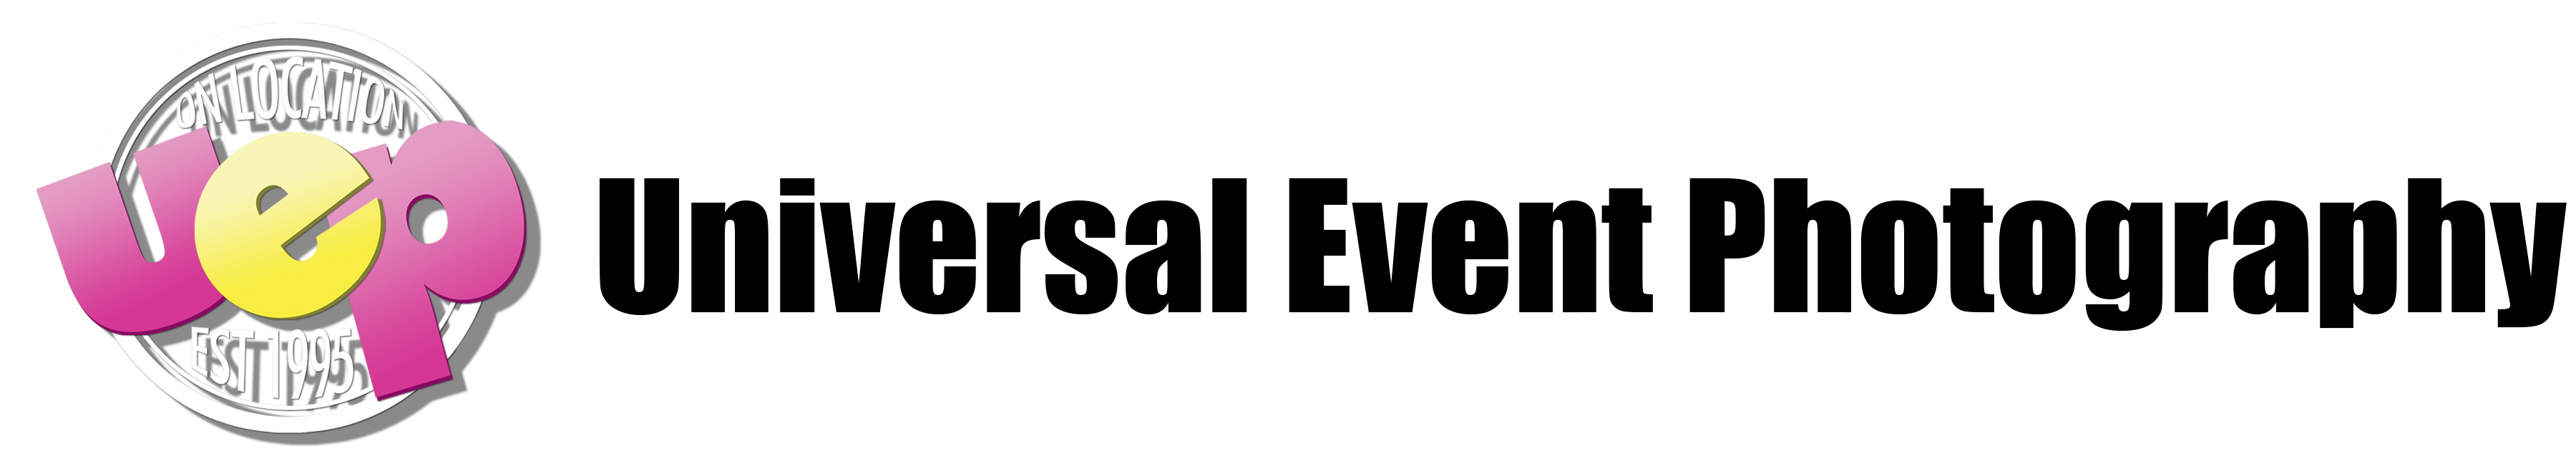 Universal Event Photography